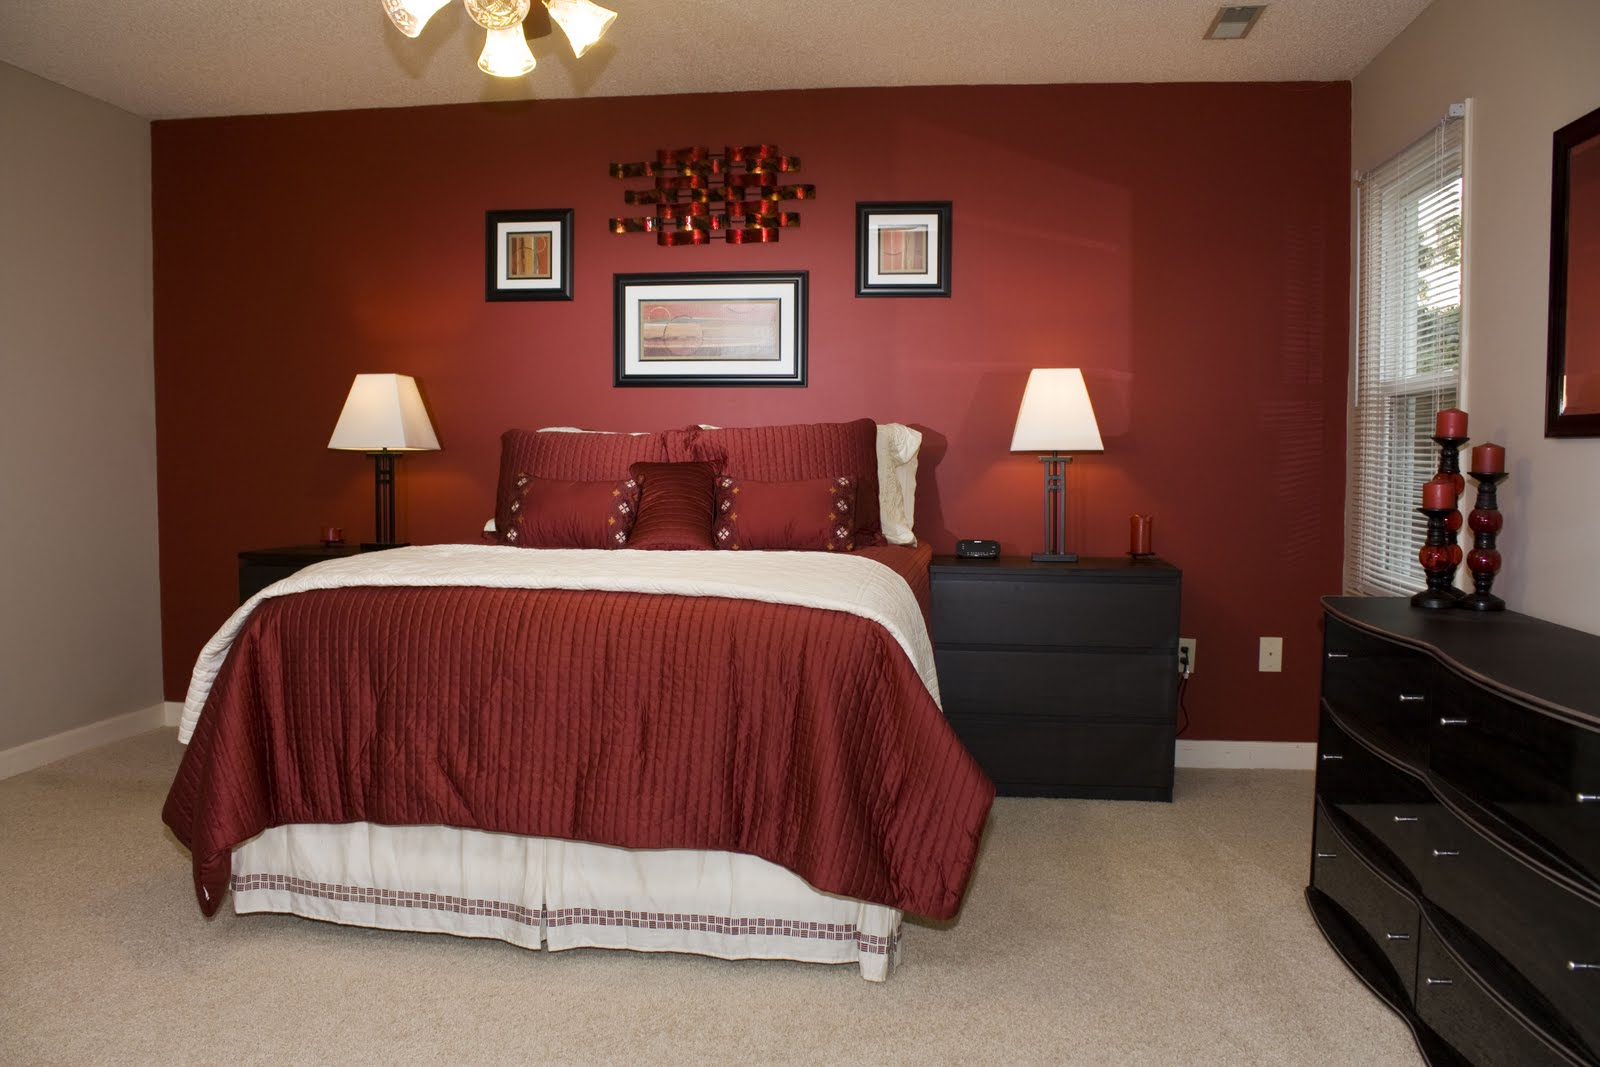 Collection of 12 x 14 bedroom houston real estate for Bedroom ideas 12x14